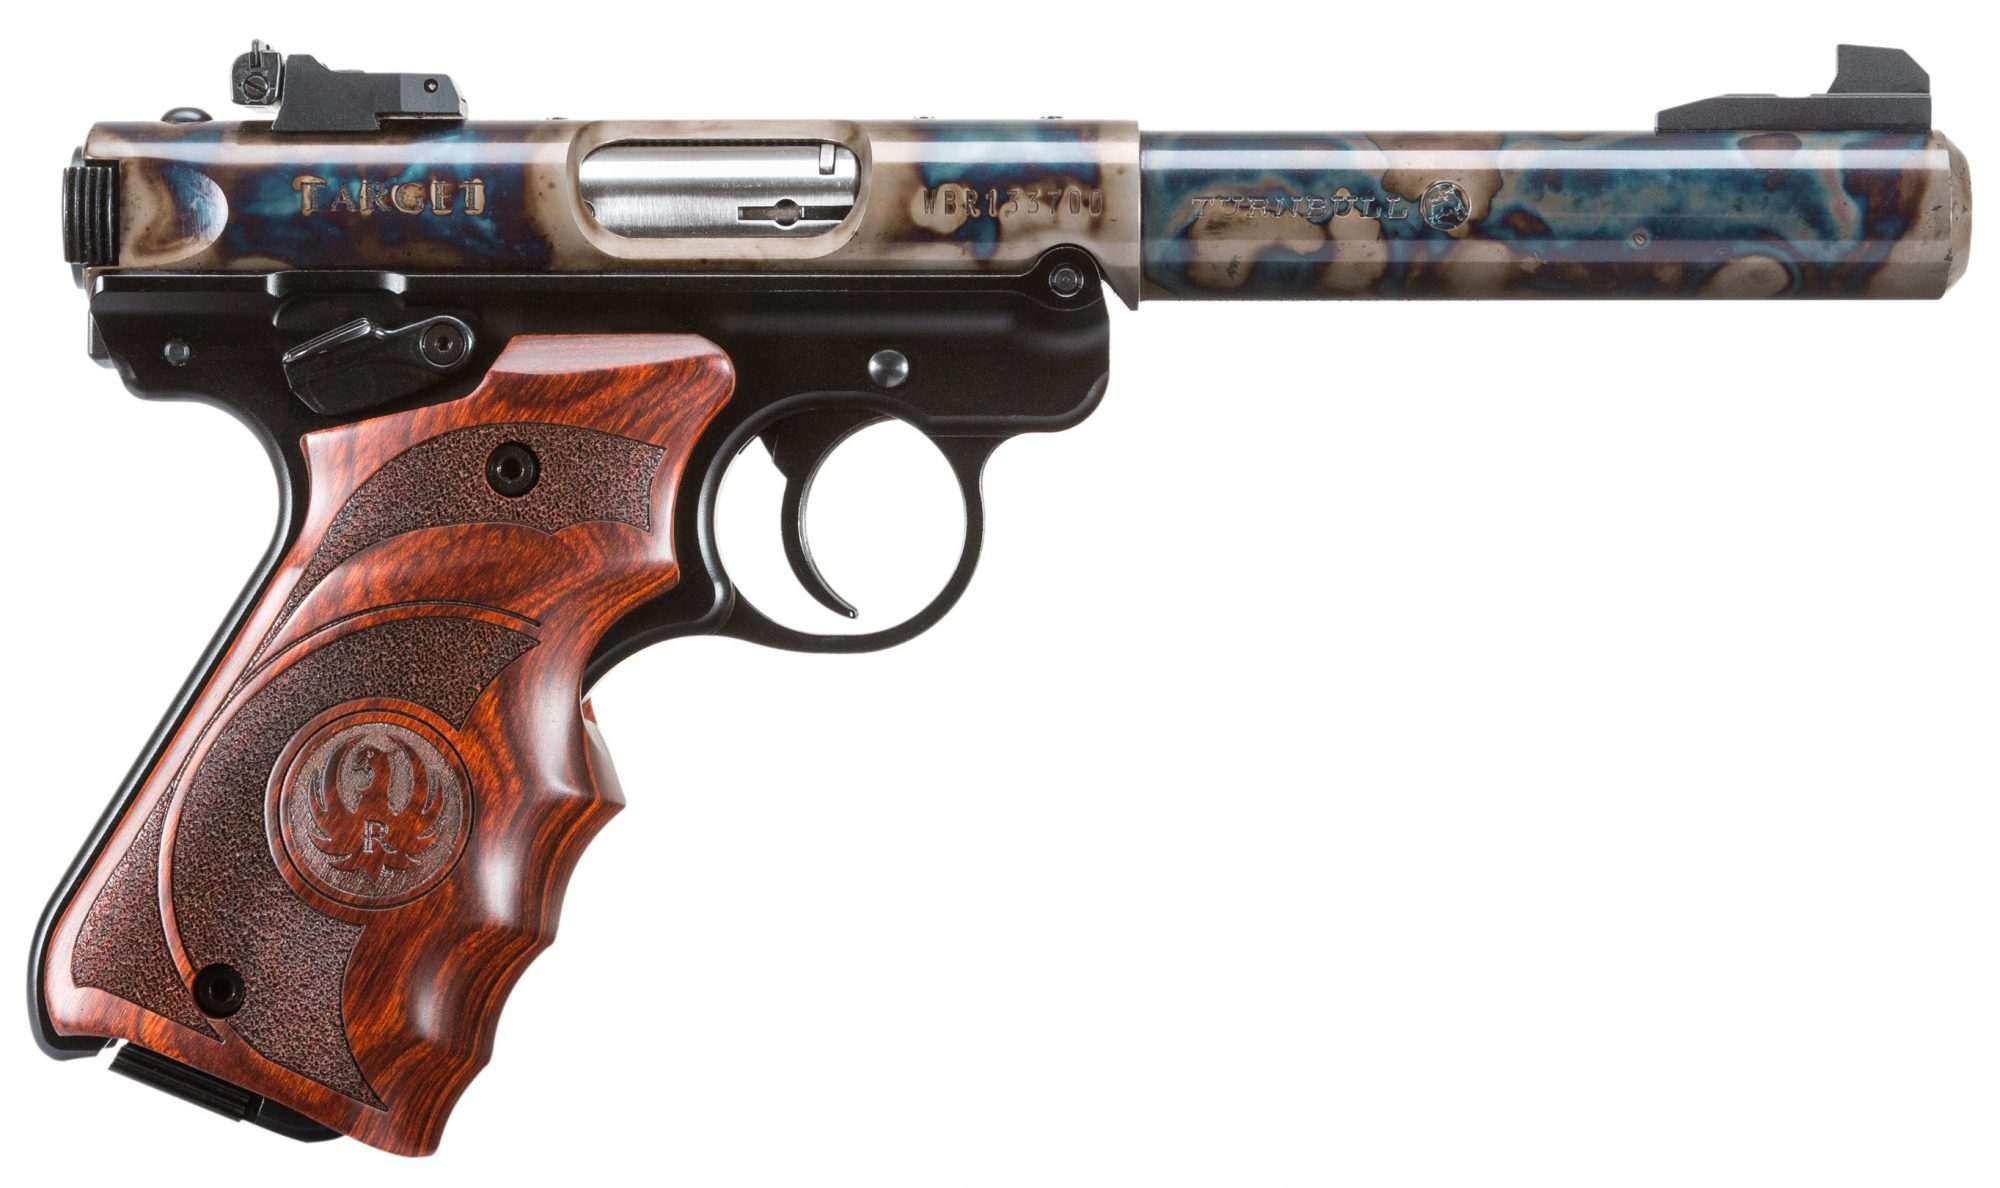 Turnbull Finished Ruger Mark IV, Wood Grips - Made to Order